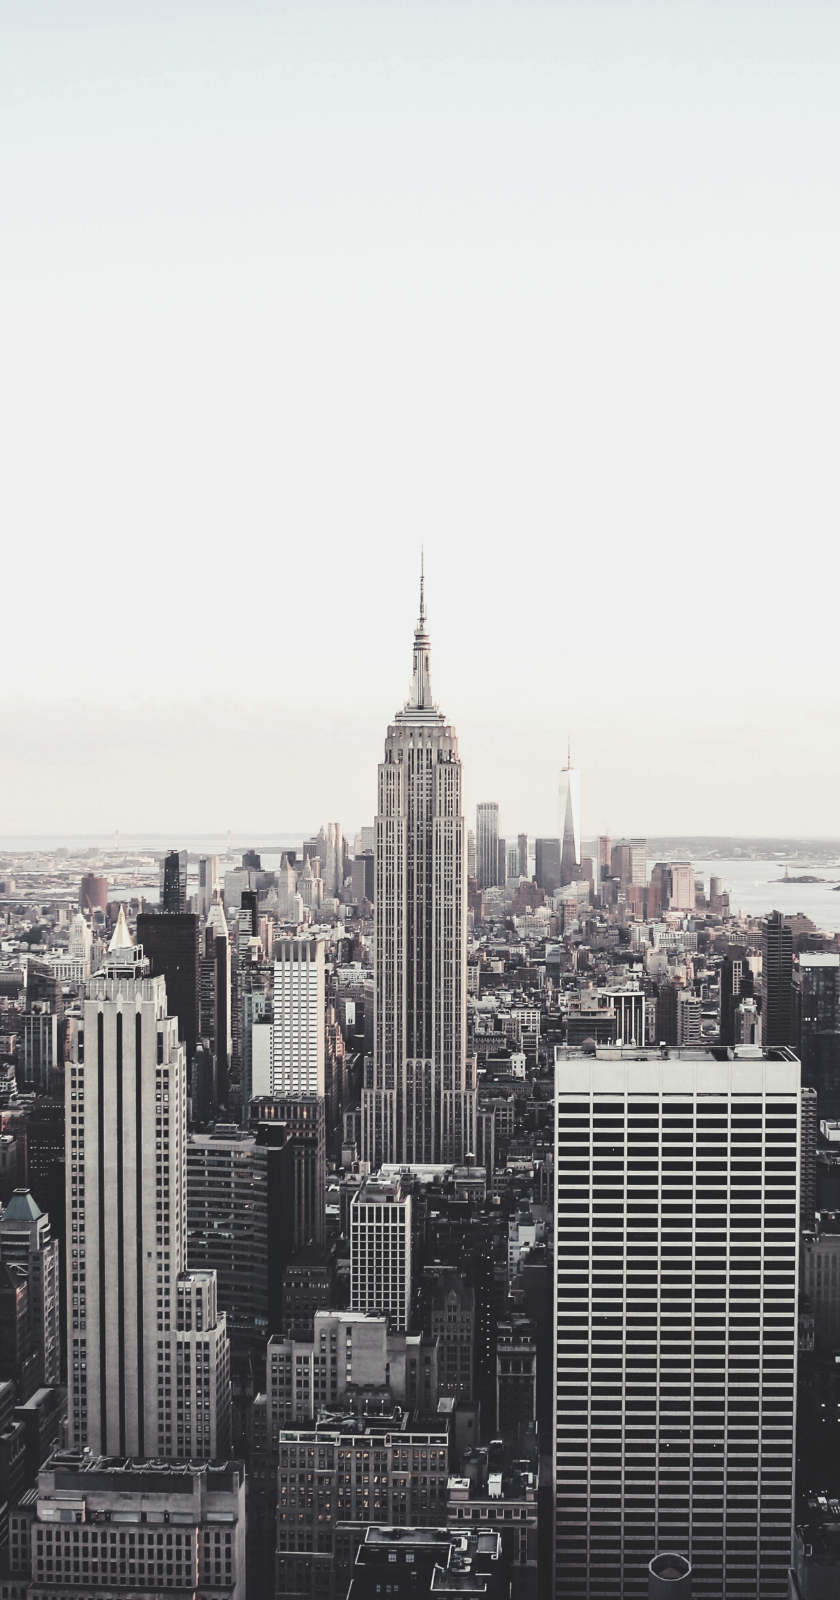 The Best 25 New York City Wallpapers To Download Free For Iphone New York Iphone Wallpaper Manhattan Wallpaper City Wallpaper